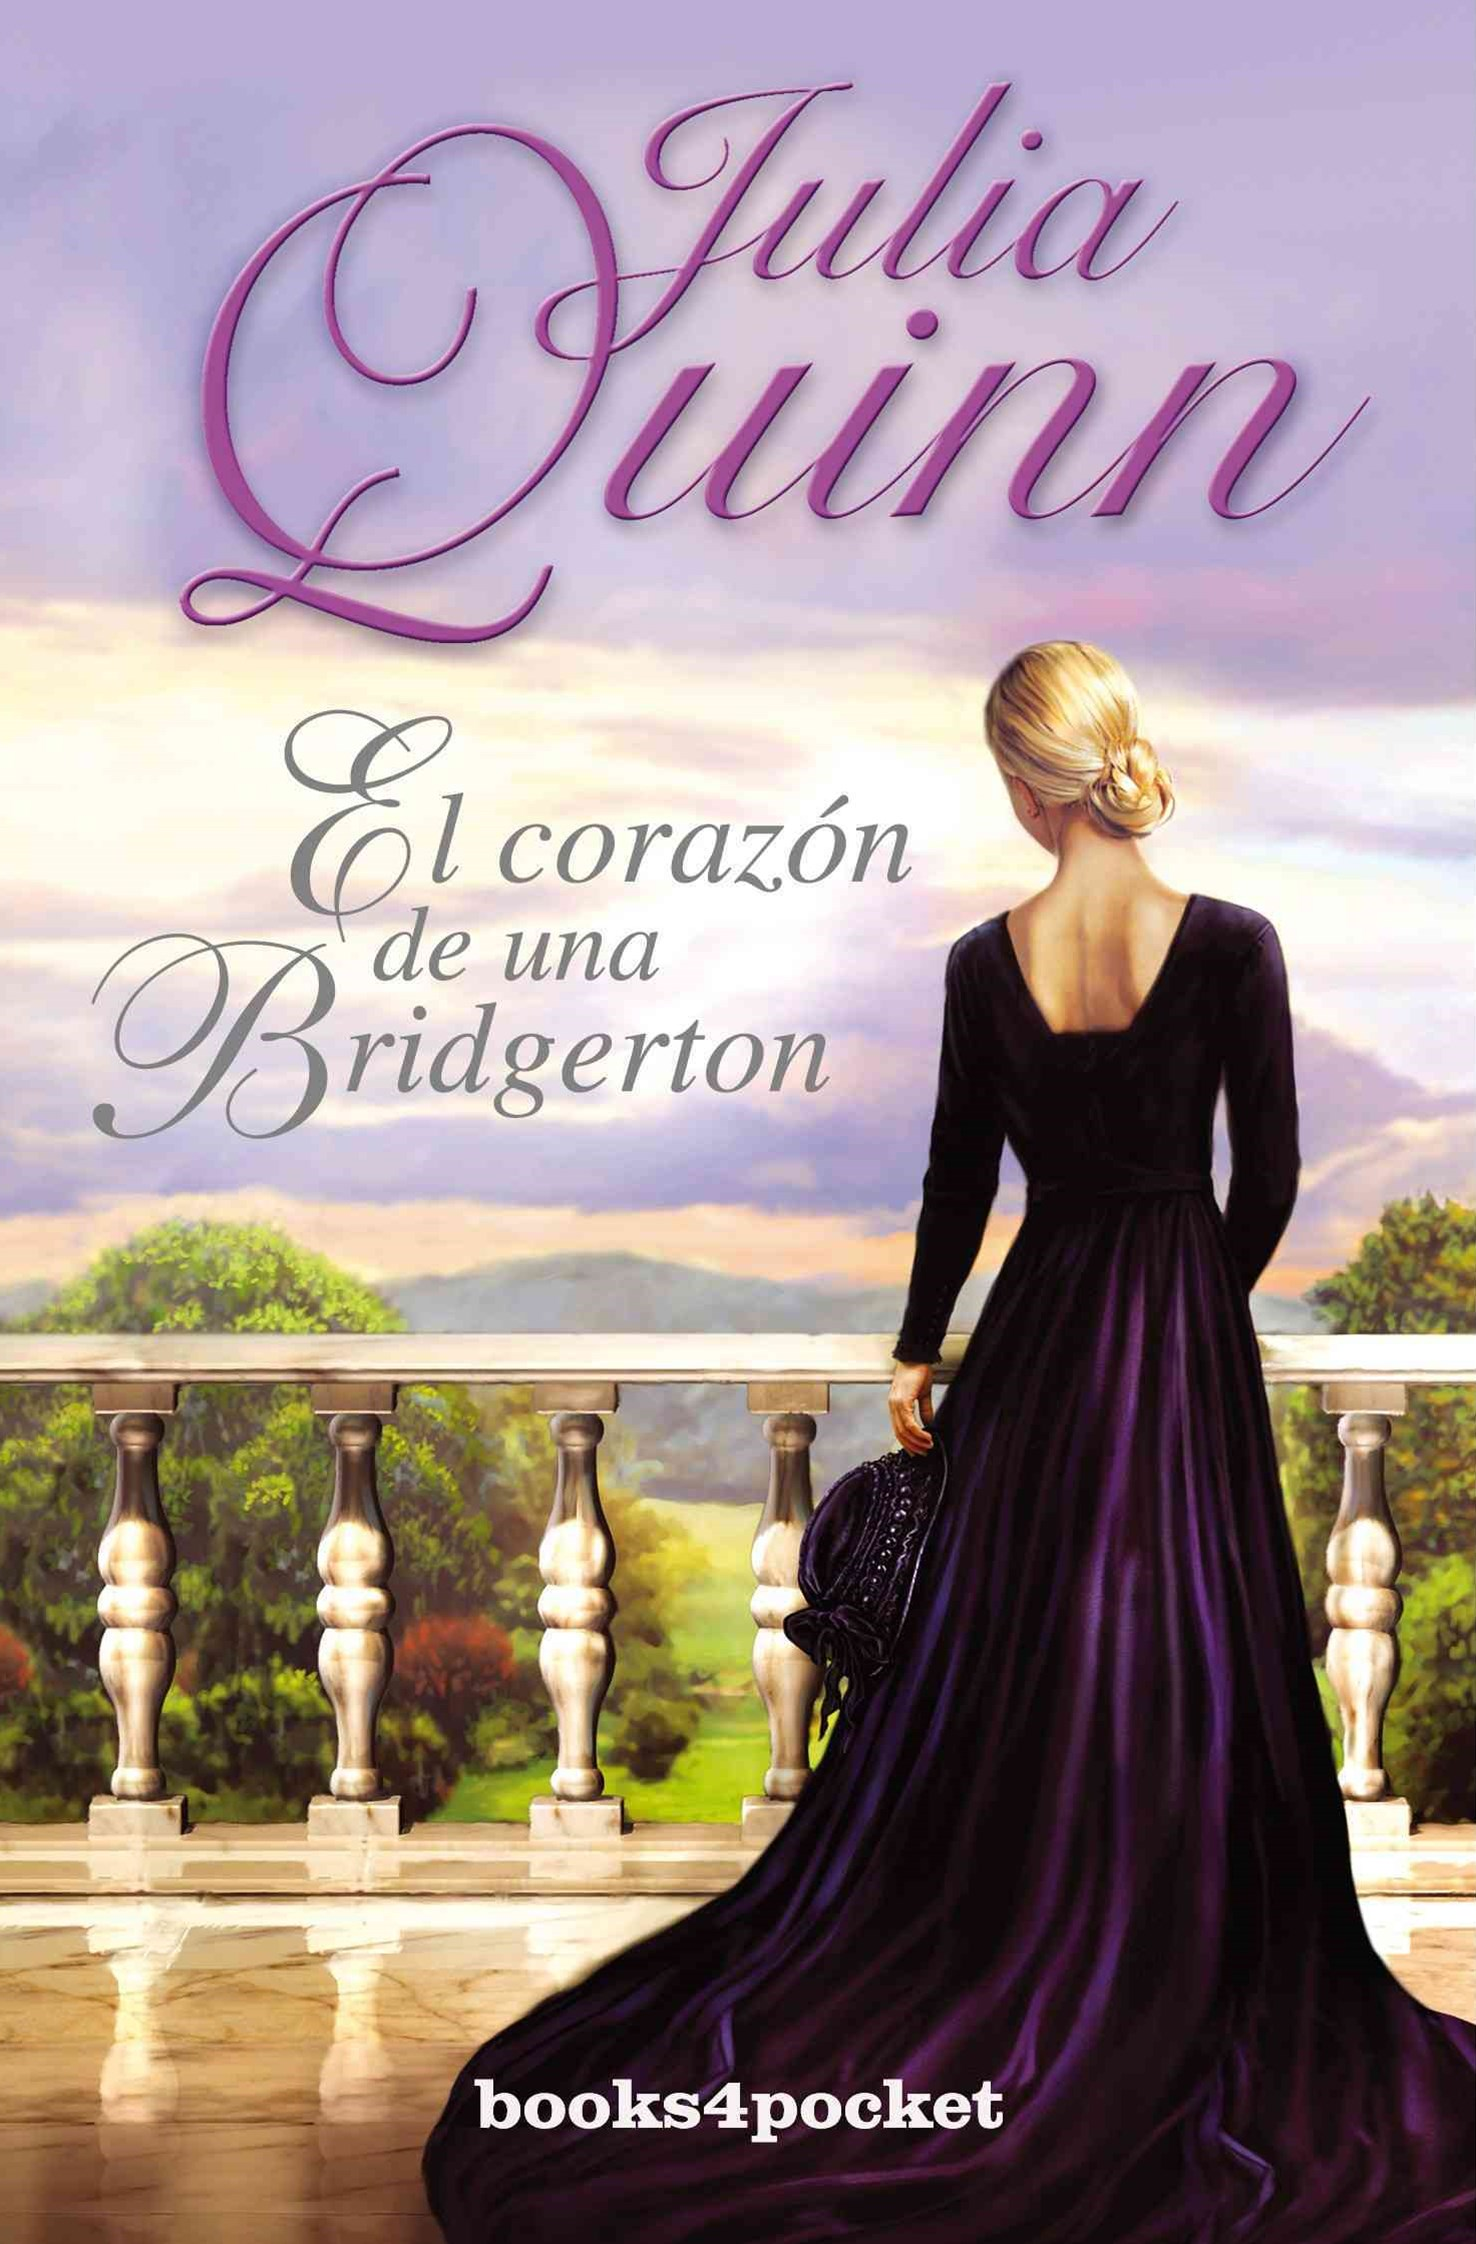 El Corazon de una Bridgerton